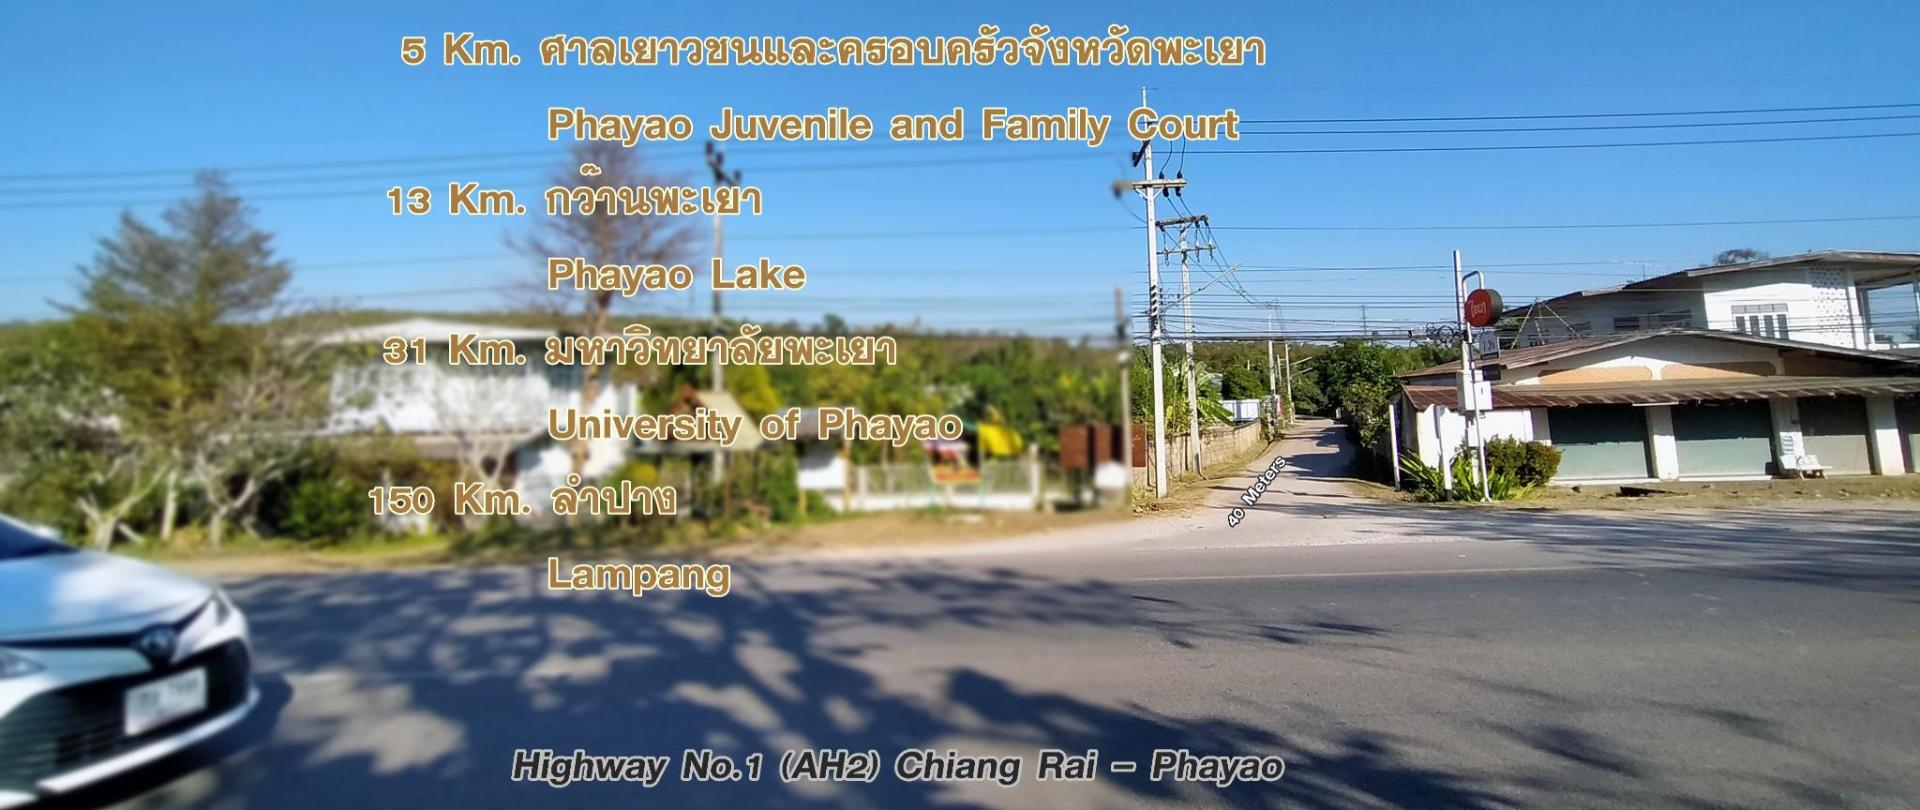 I-Ya-Guesthouse-Phayao-highway-No.1-chiangrai-phayao-40-meters-away.jpg